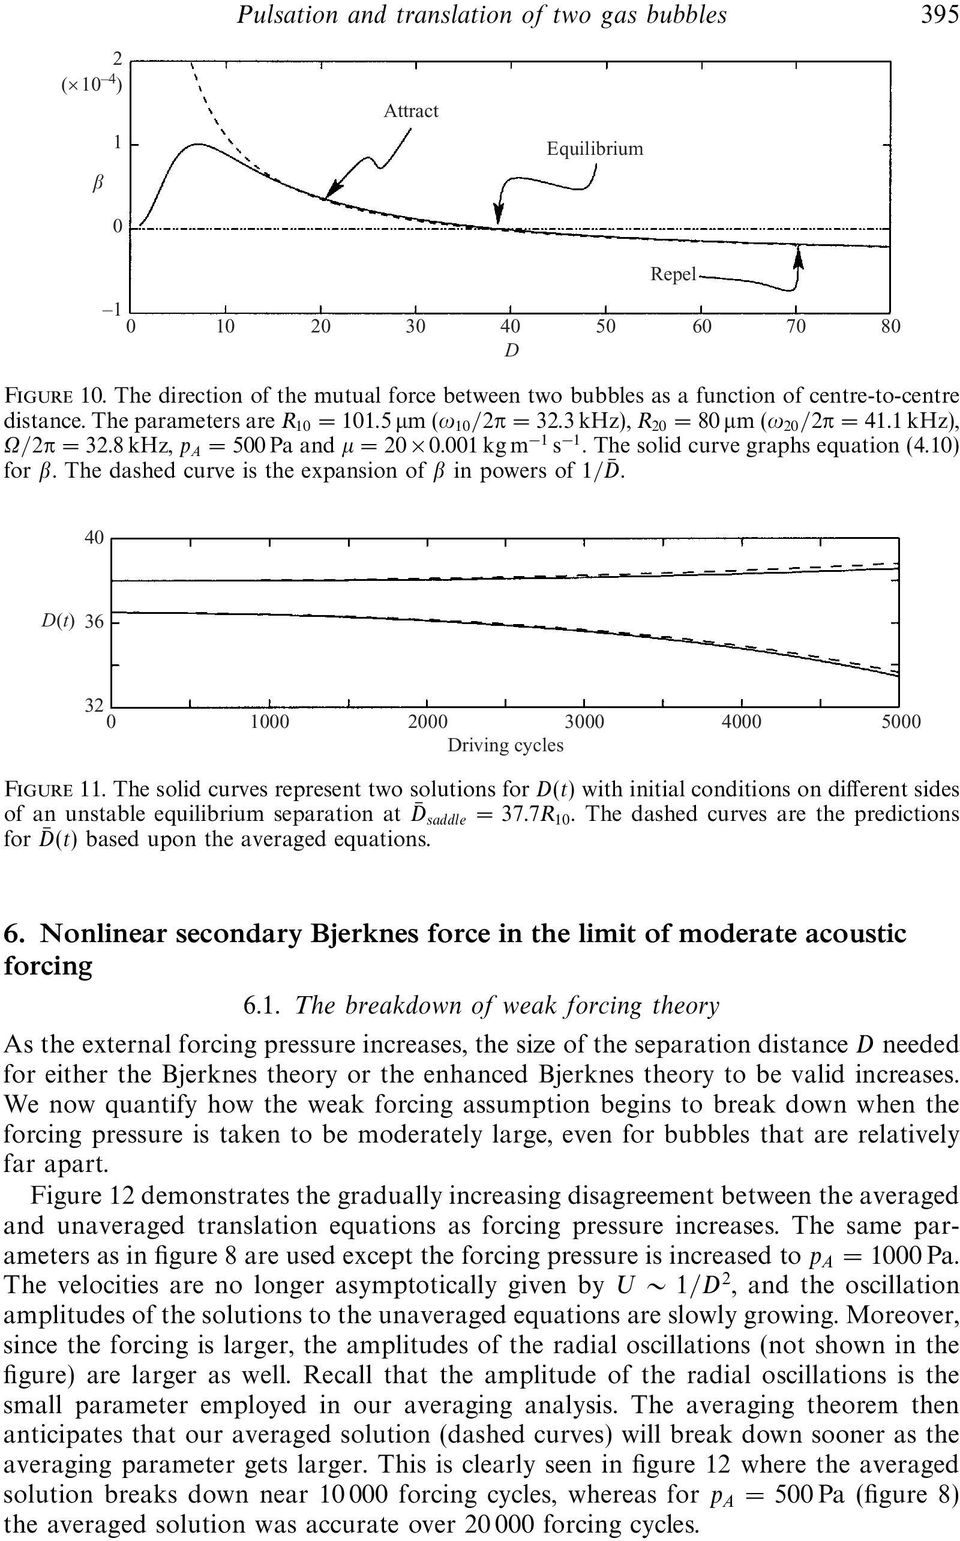 Coupled pulsation and translation of two gas bubbles in a